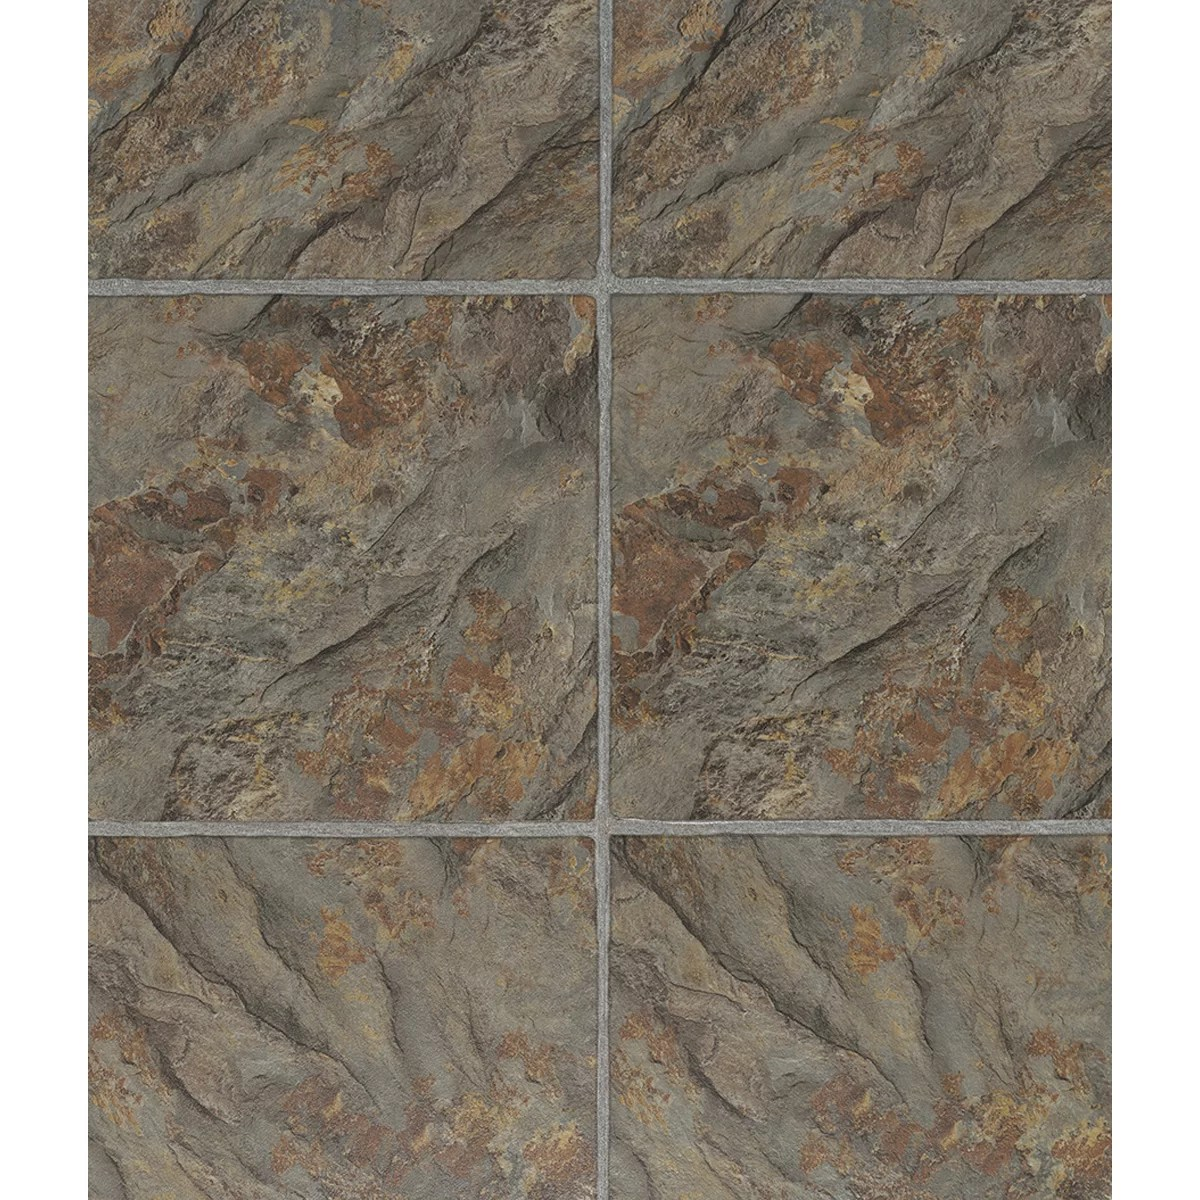 "Islander Flooring 3 Piece Grouted Style 12"" x 36"" x 4mm"